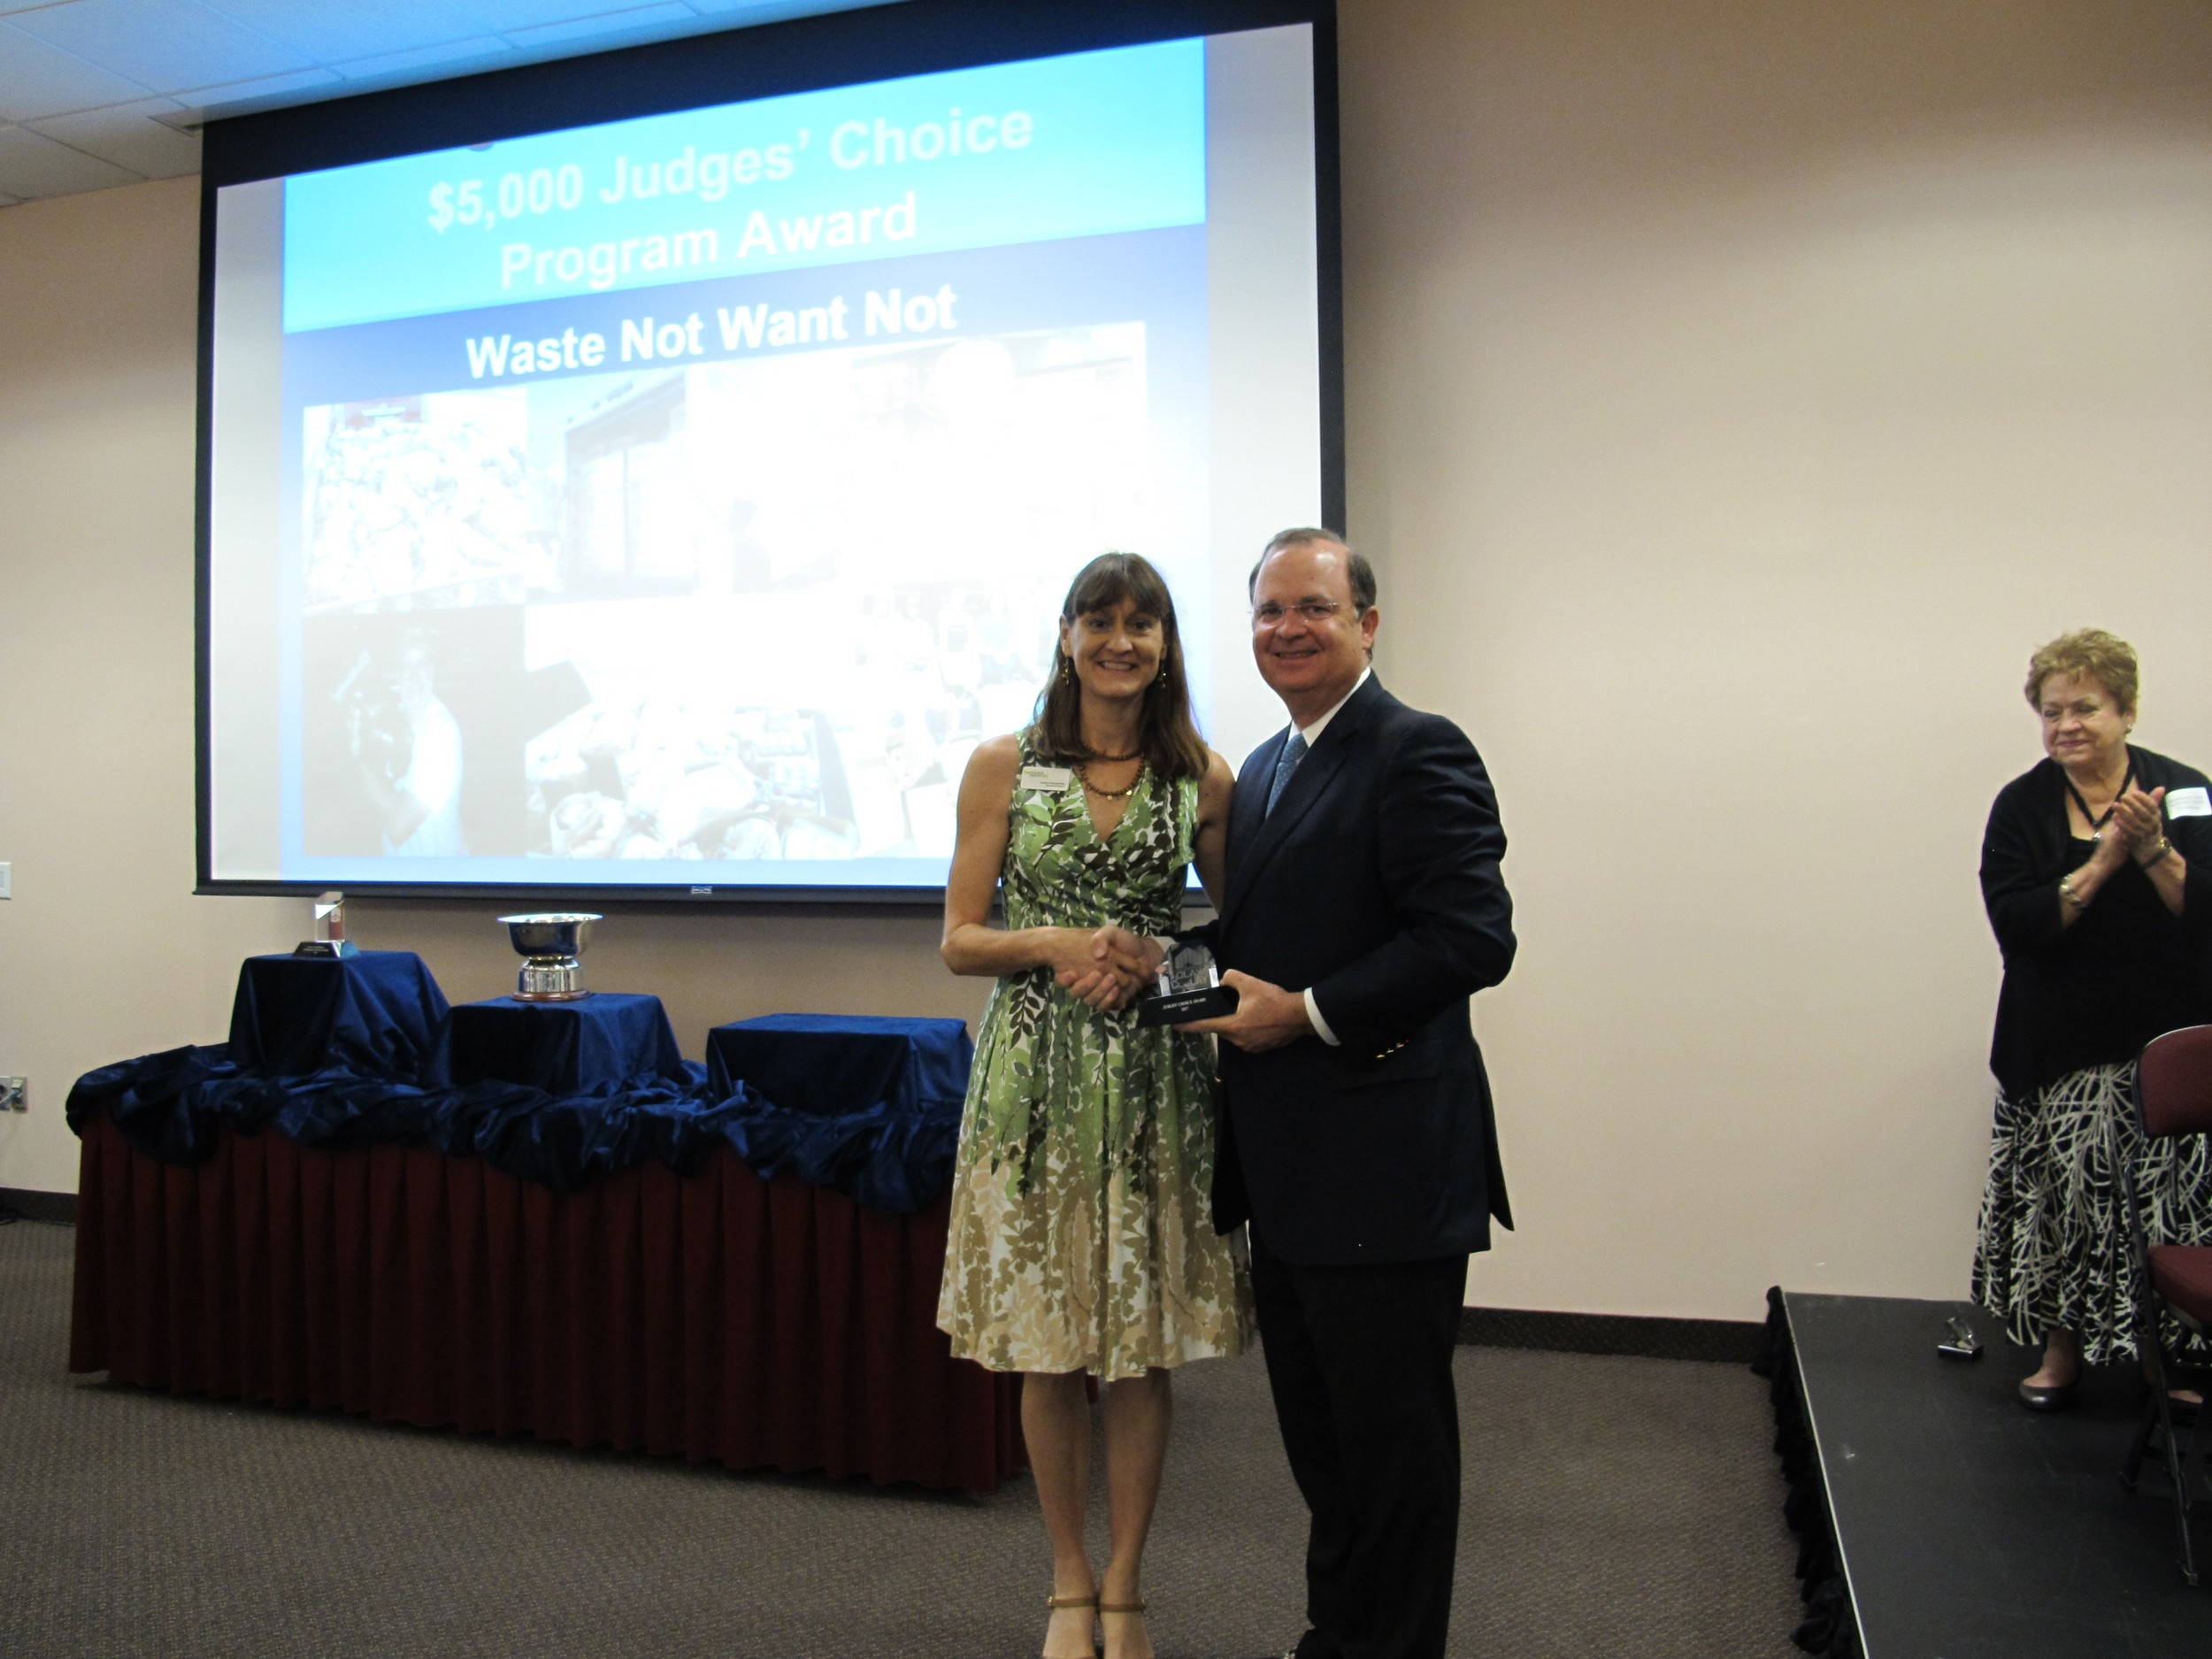 Waste Not Want Not Judges' Choice Program Award received by Sandra Staudt Killea, Executive Director.